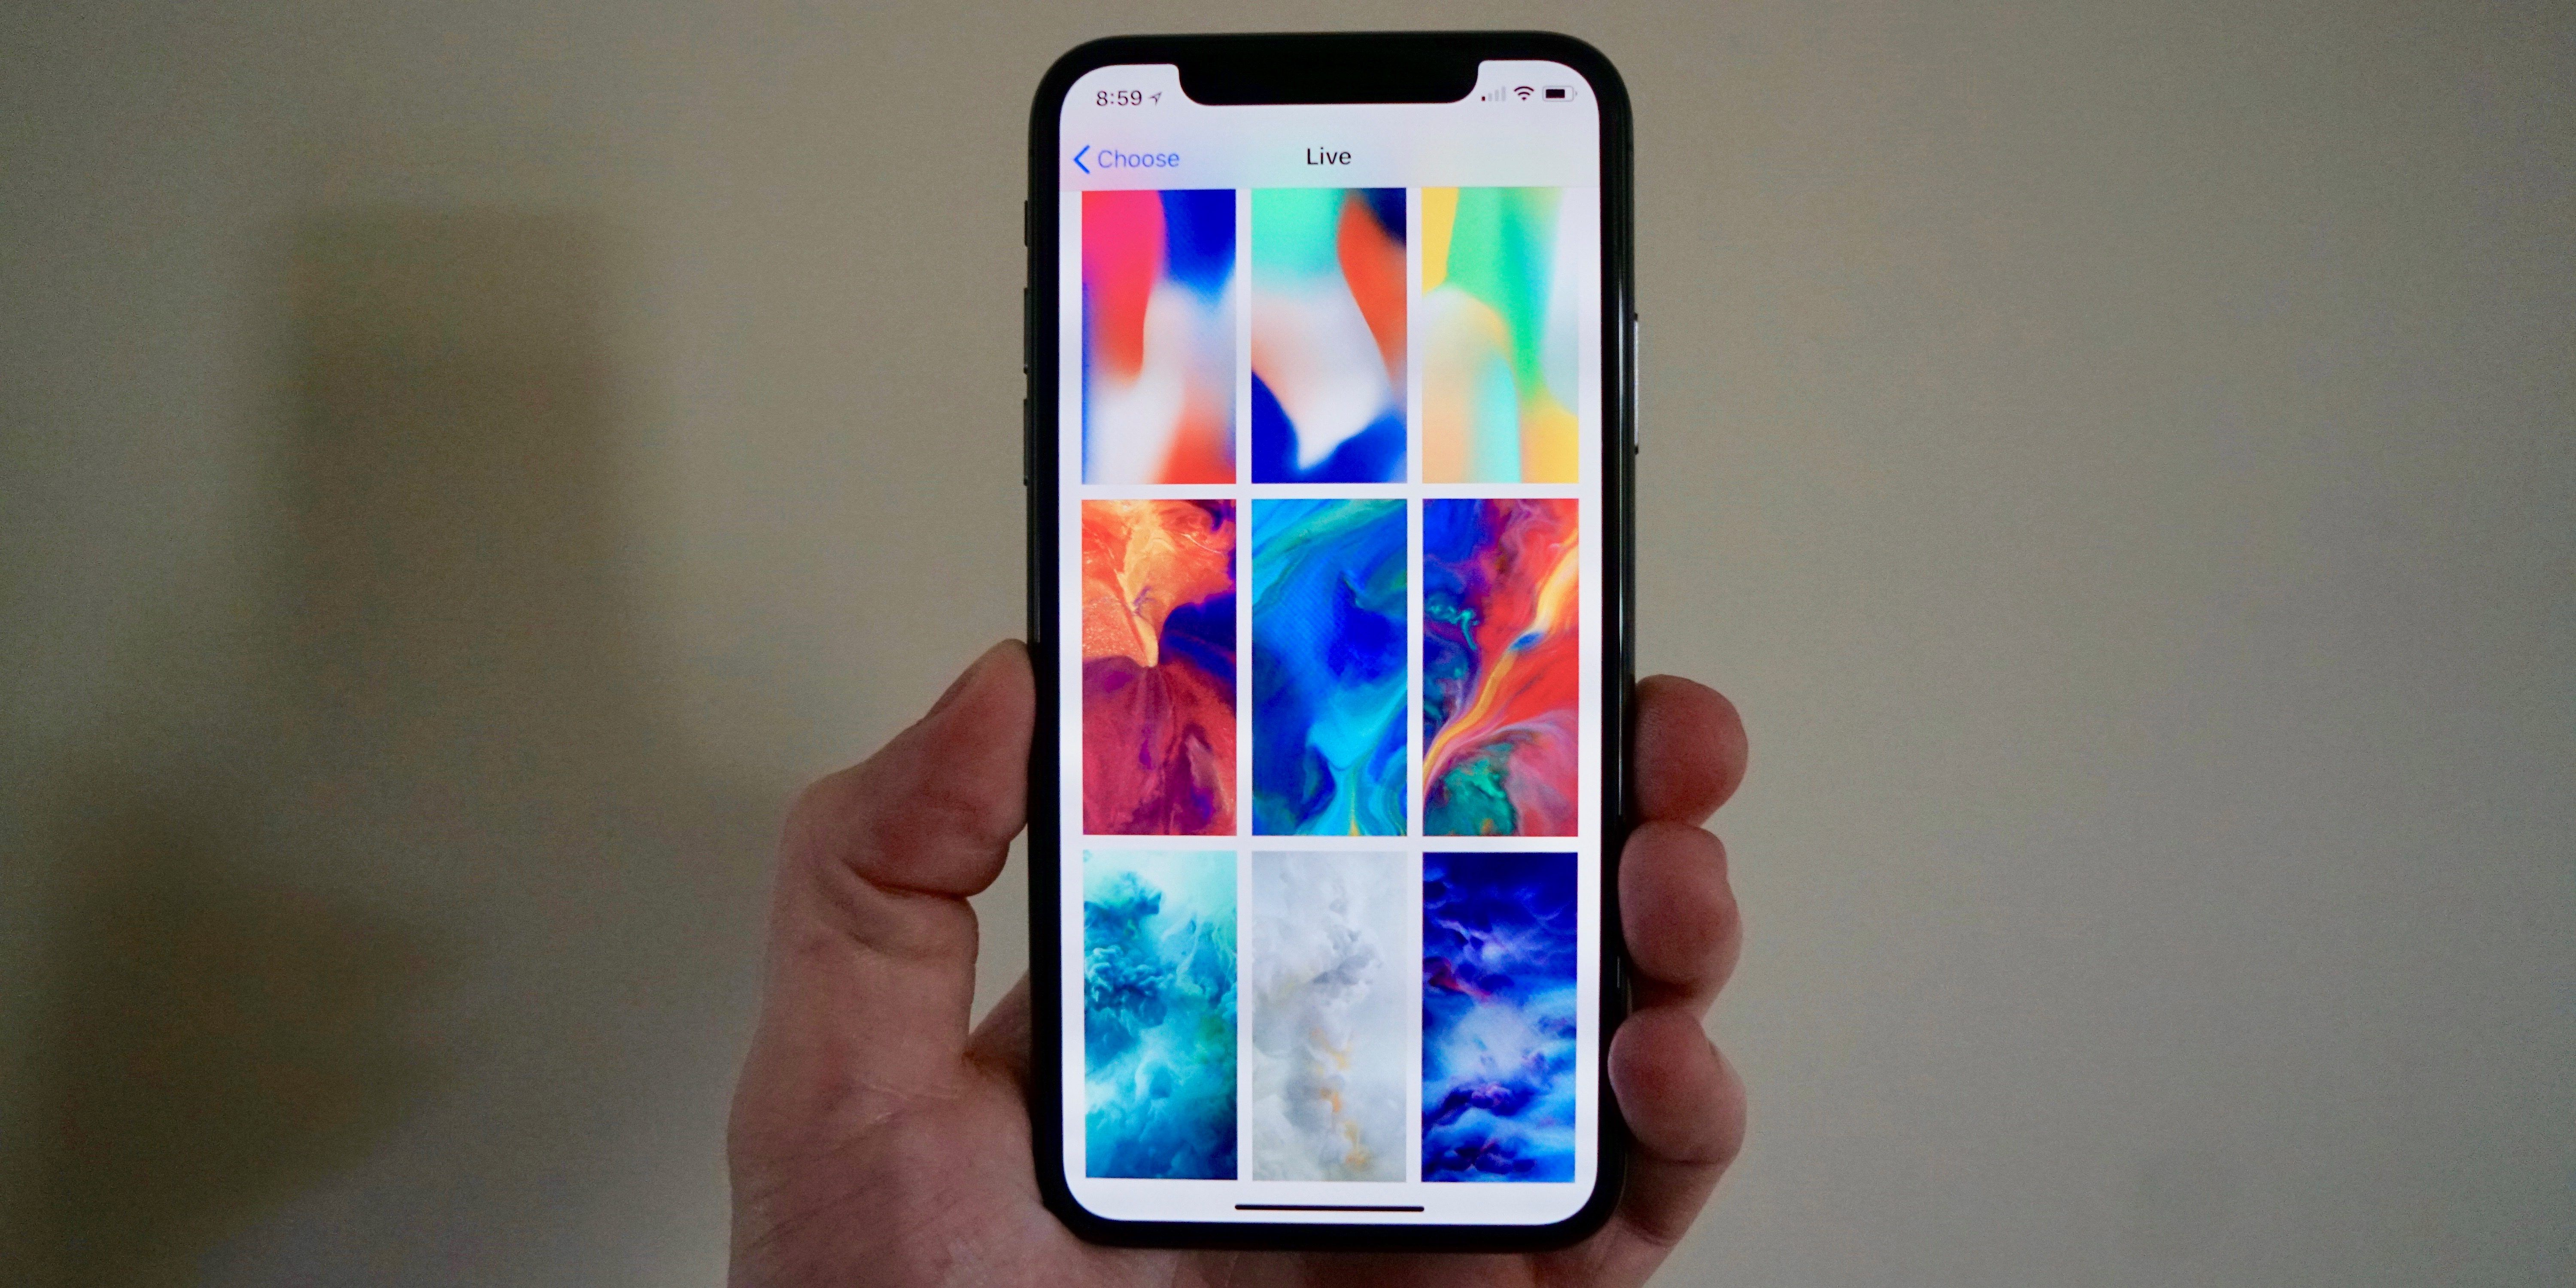 Iphone X Features 7 New Dynamic And 6 New Live Wallpapers Gallery